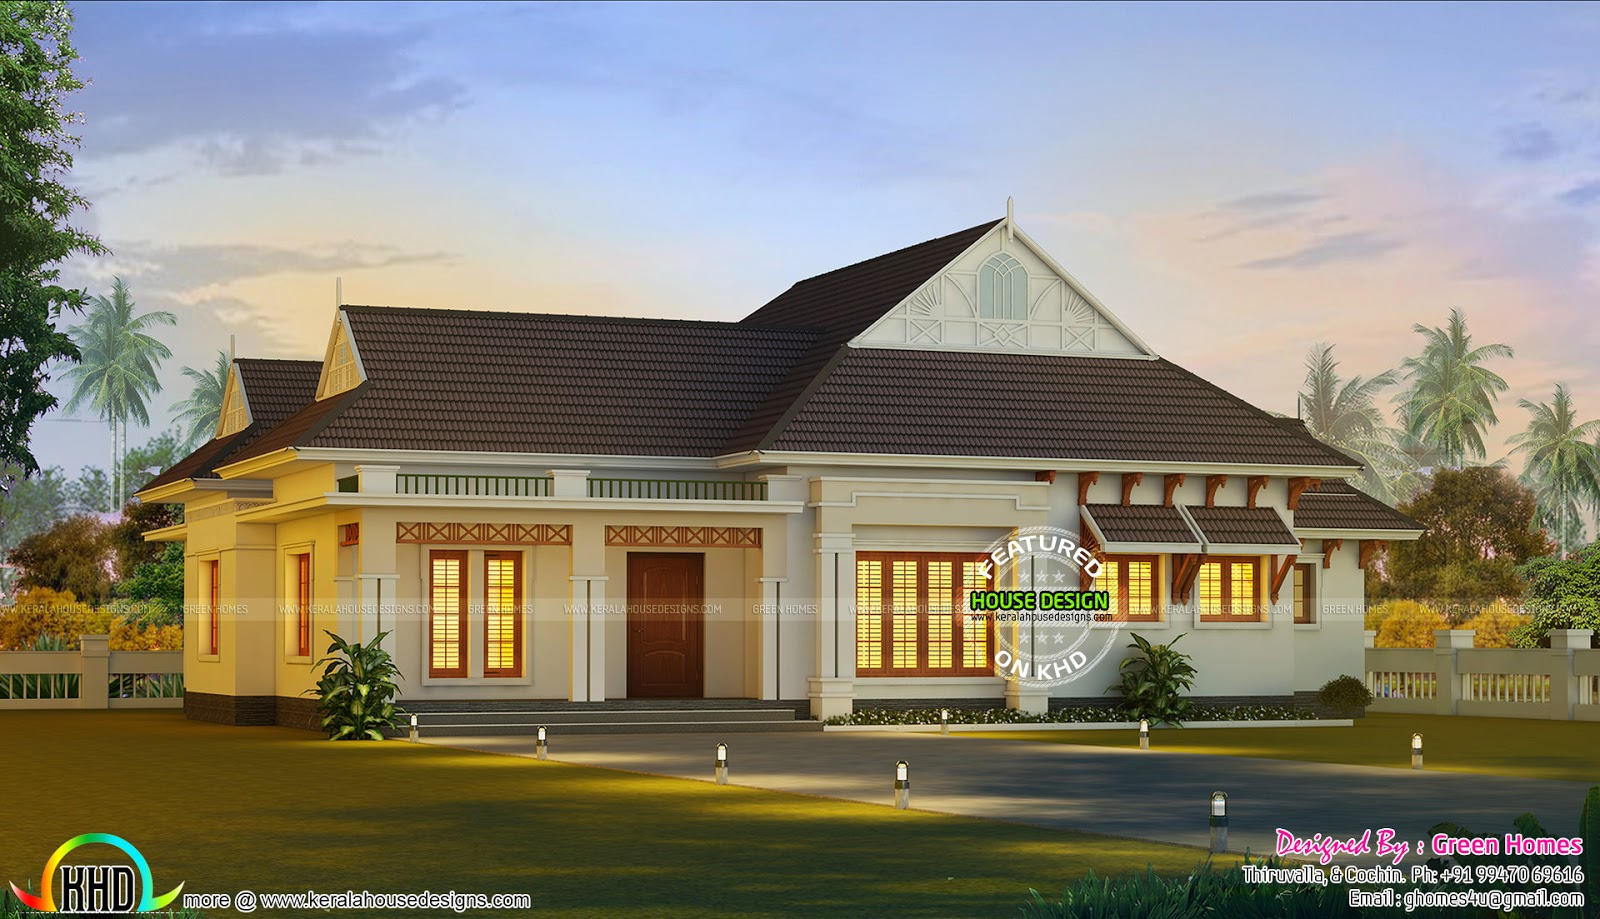 Superior Nalukettu house architecture | Kerala home design ... on 2 story house design, colonial style home design, kerala house interior design,